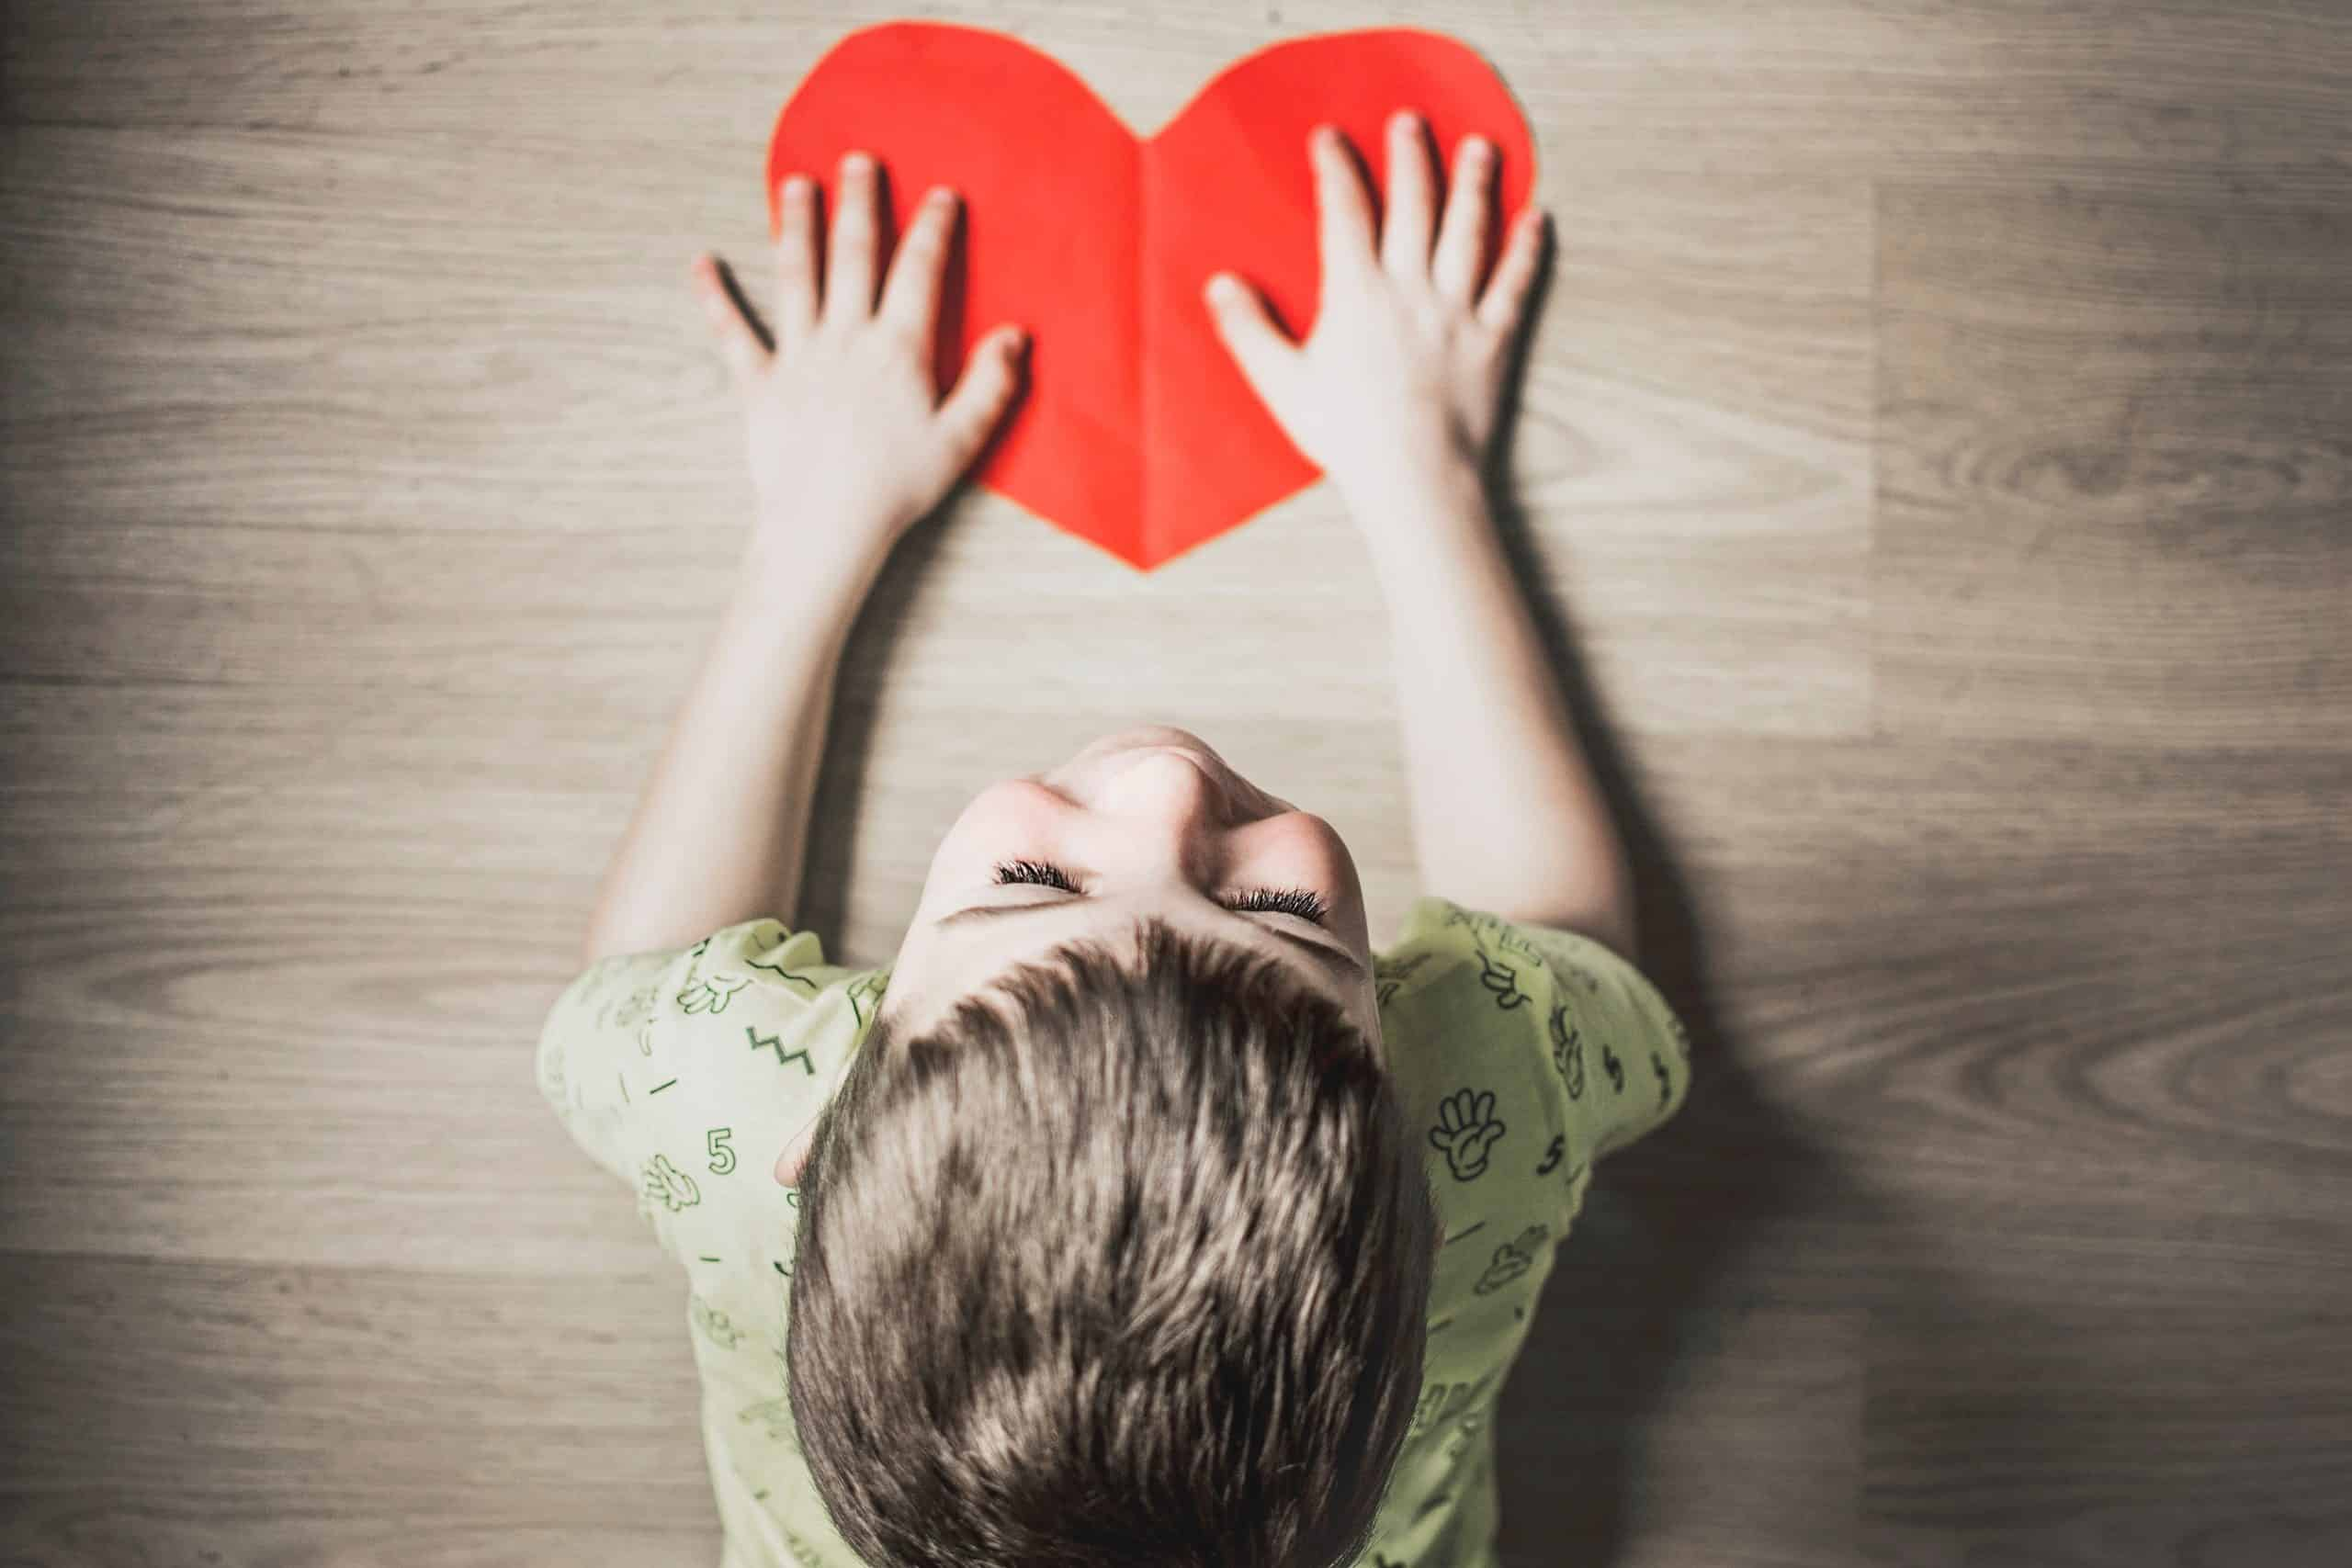 How to Guard Your Heart Tool via @trevorlund